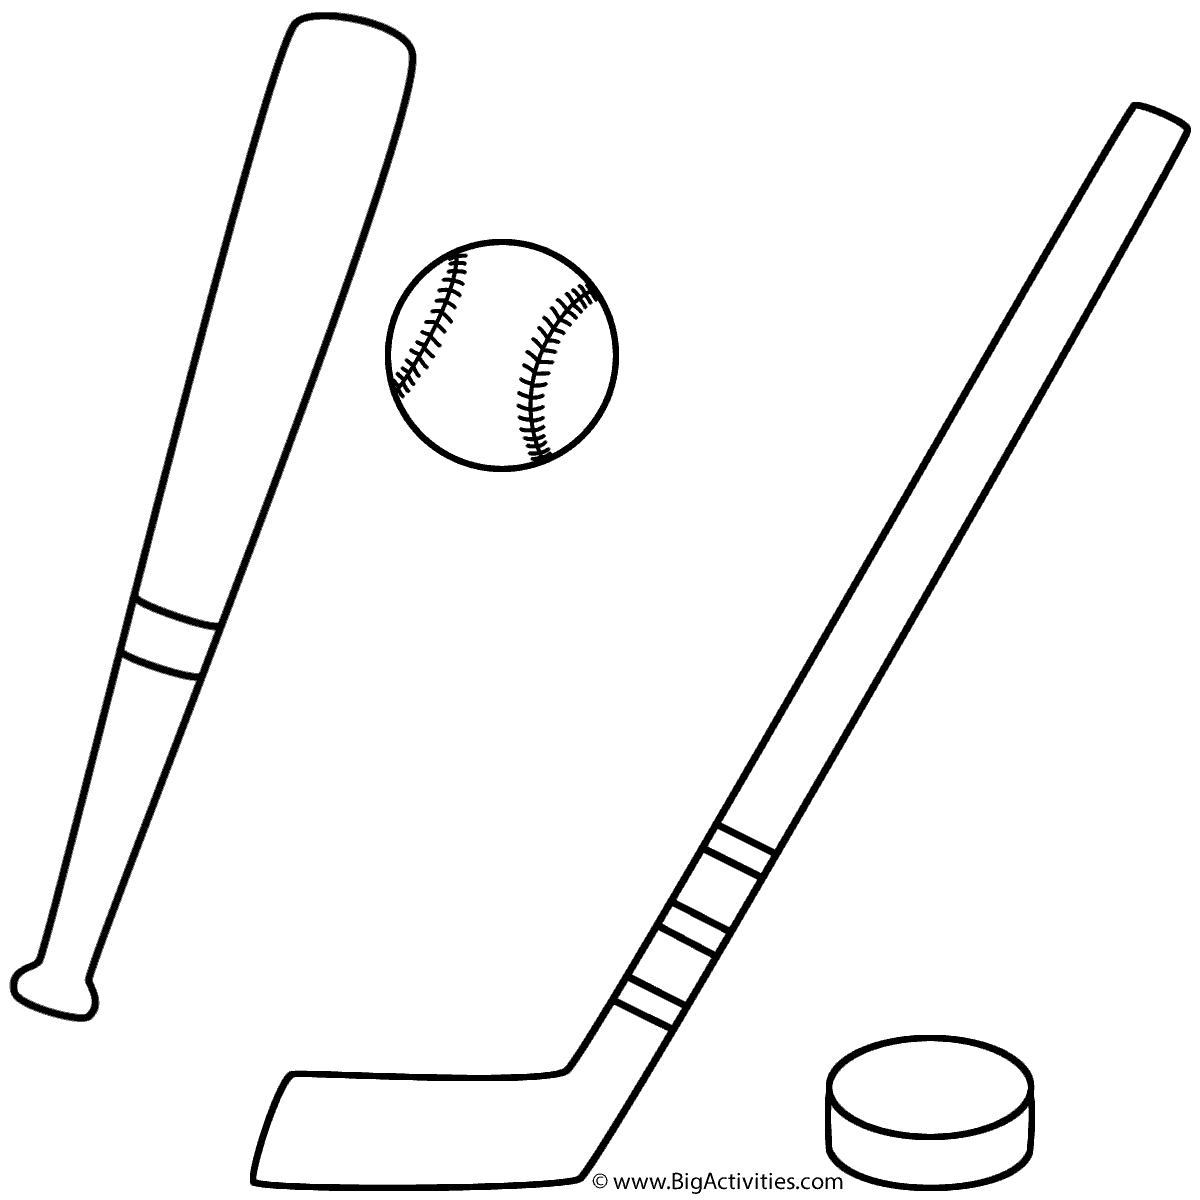 baseball and hockey coloring page sports. Black Bedroom Furniture Sets. Home Design Ideas